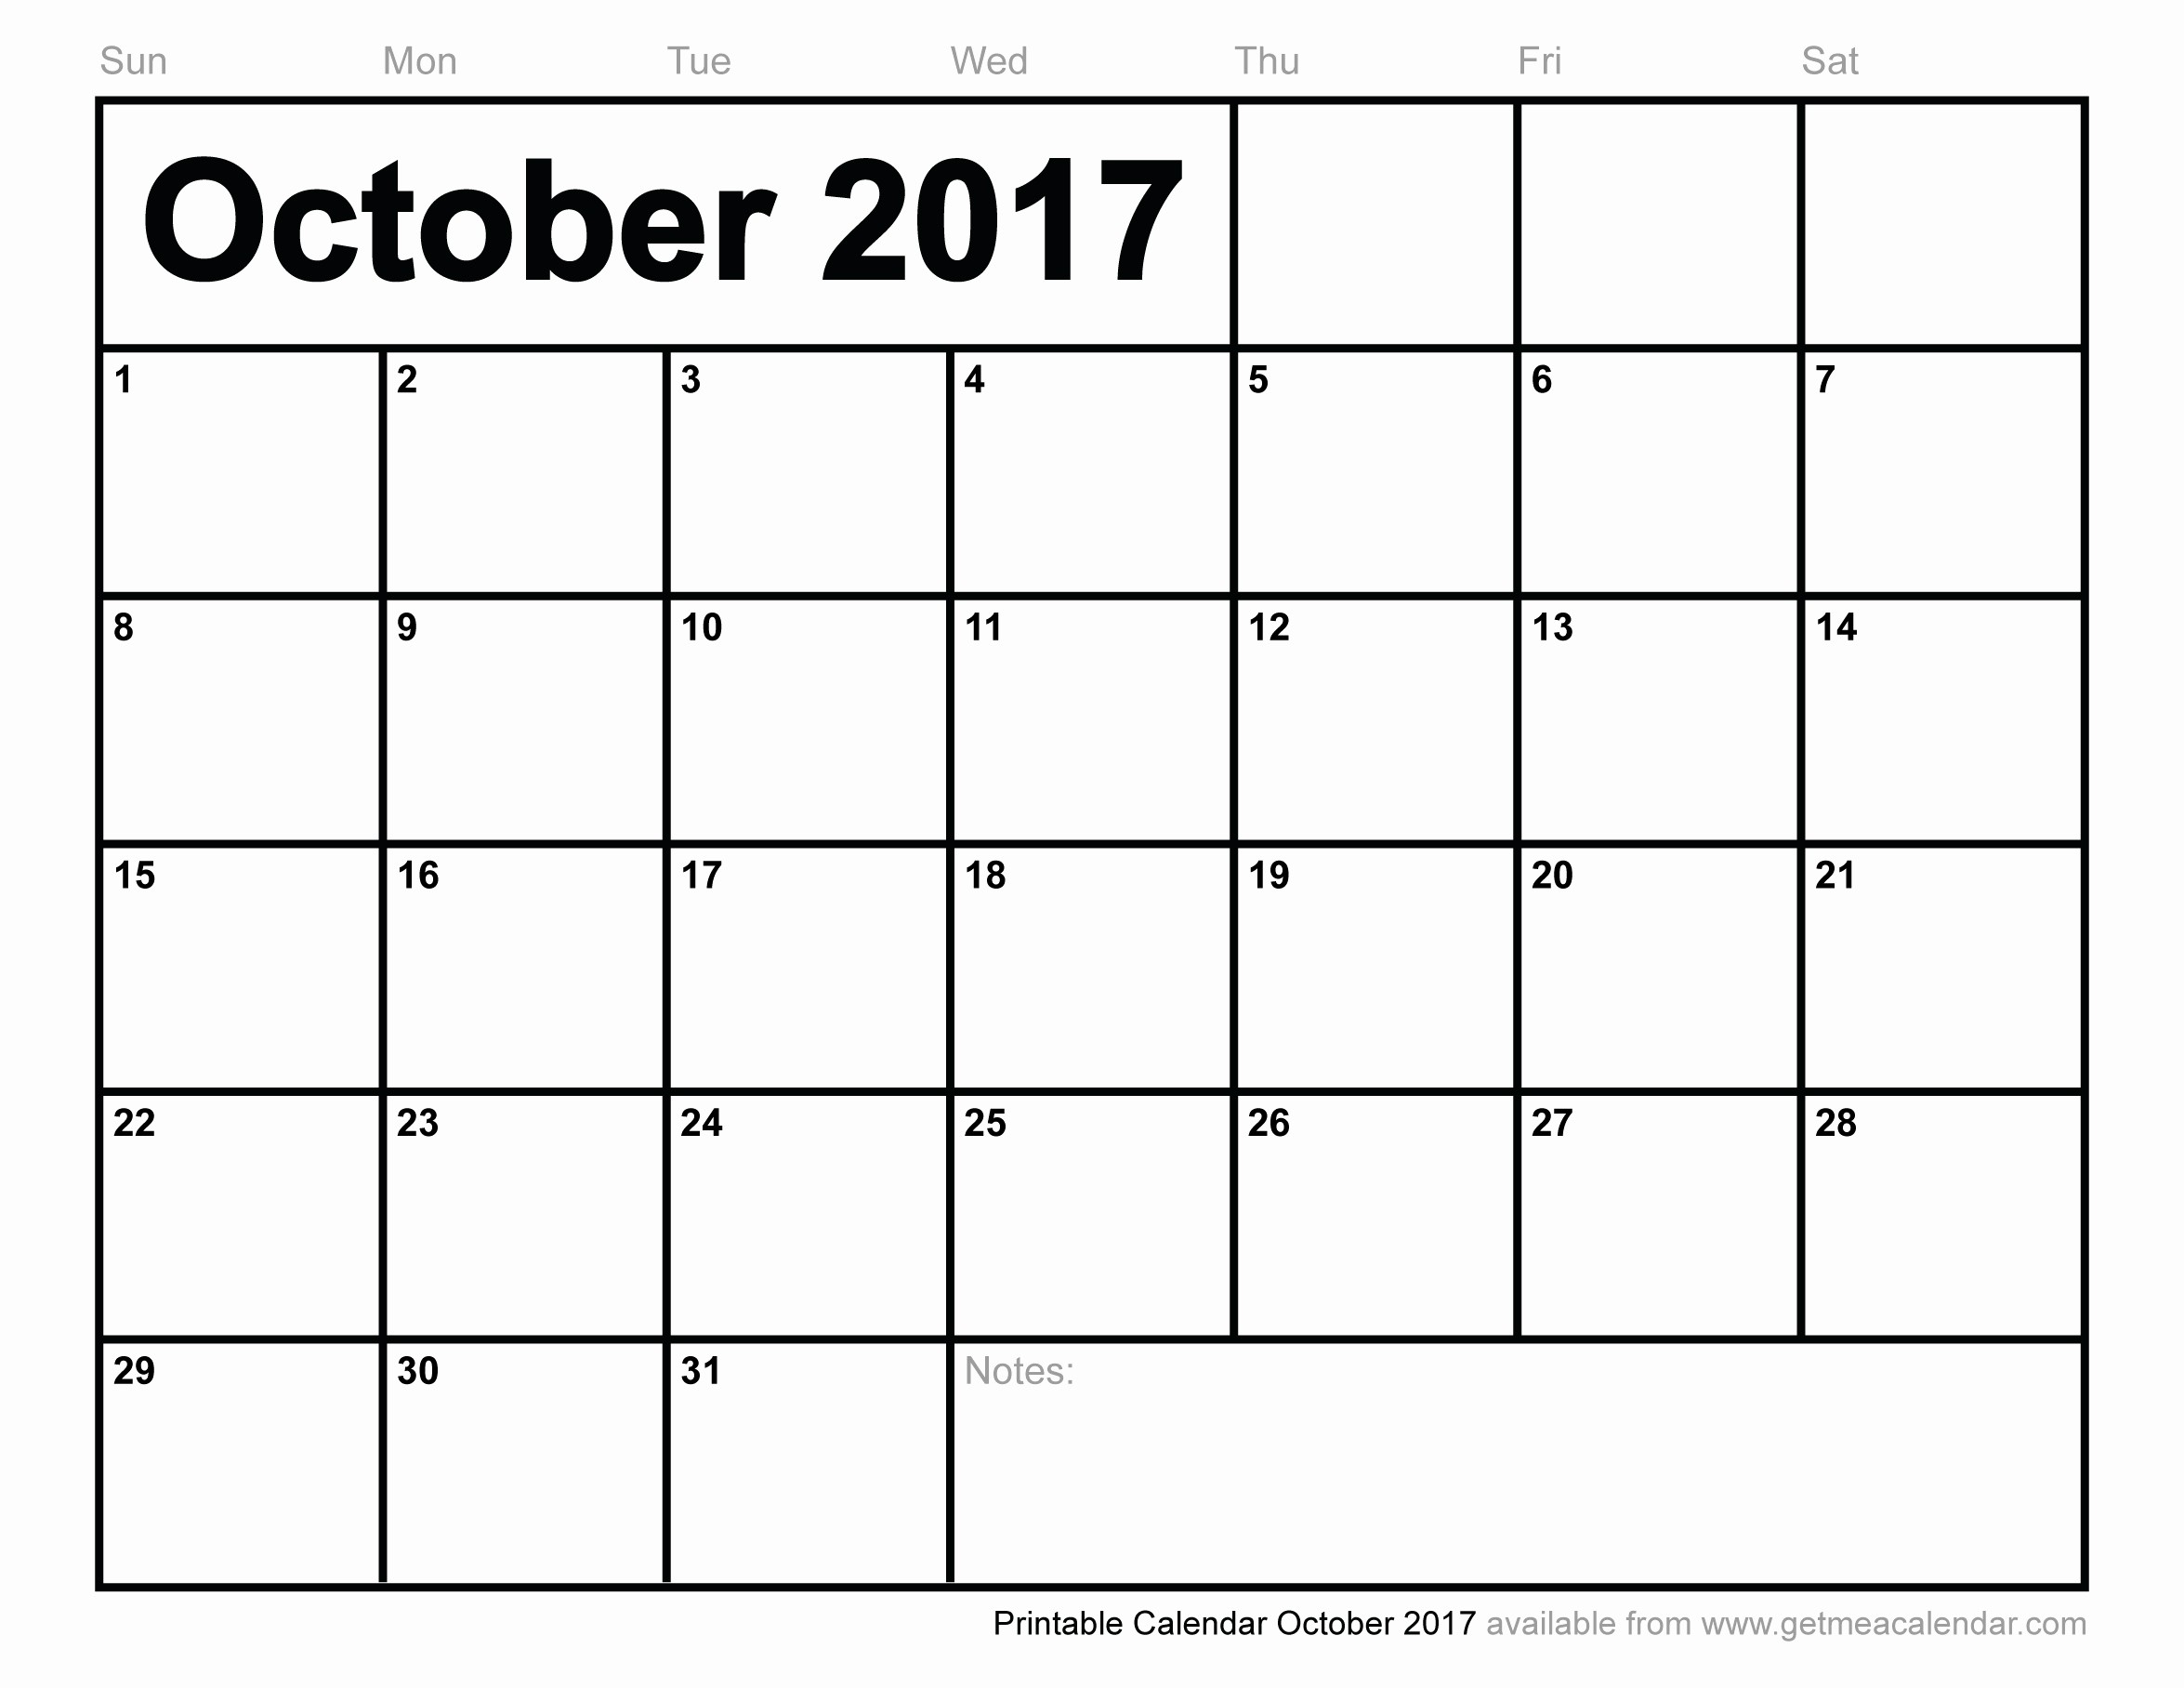 2017 Yearly Calendar Excel Template Lovely October 2017 Calendar Excel